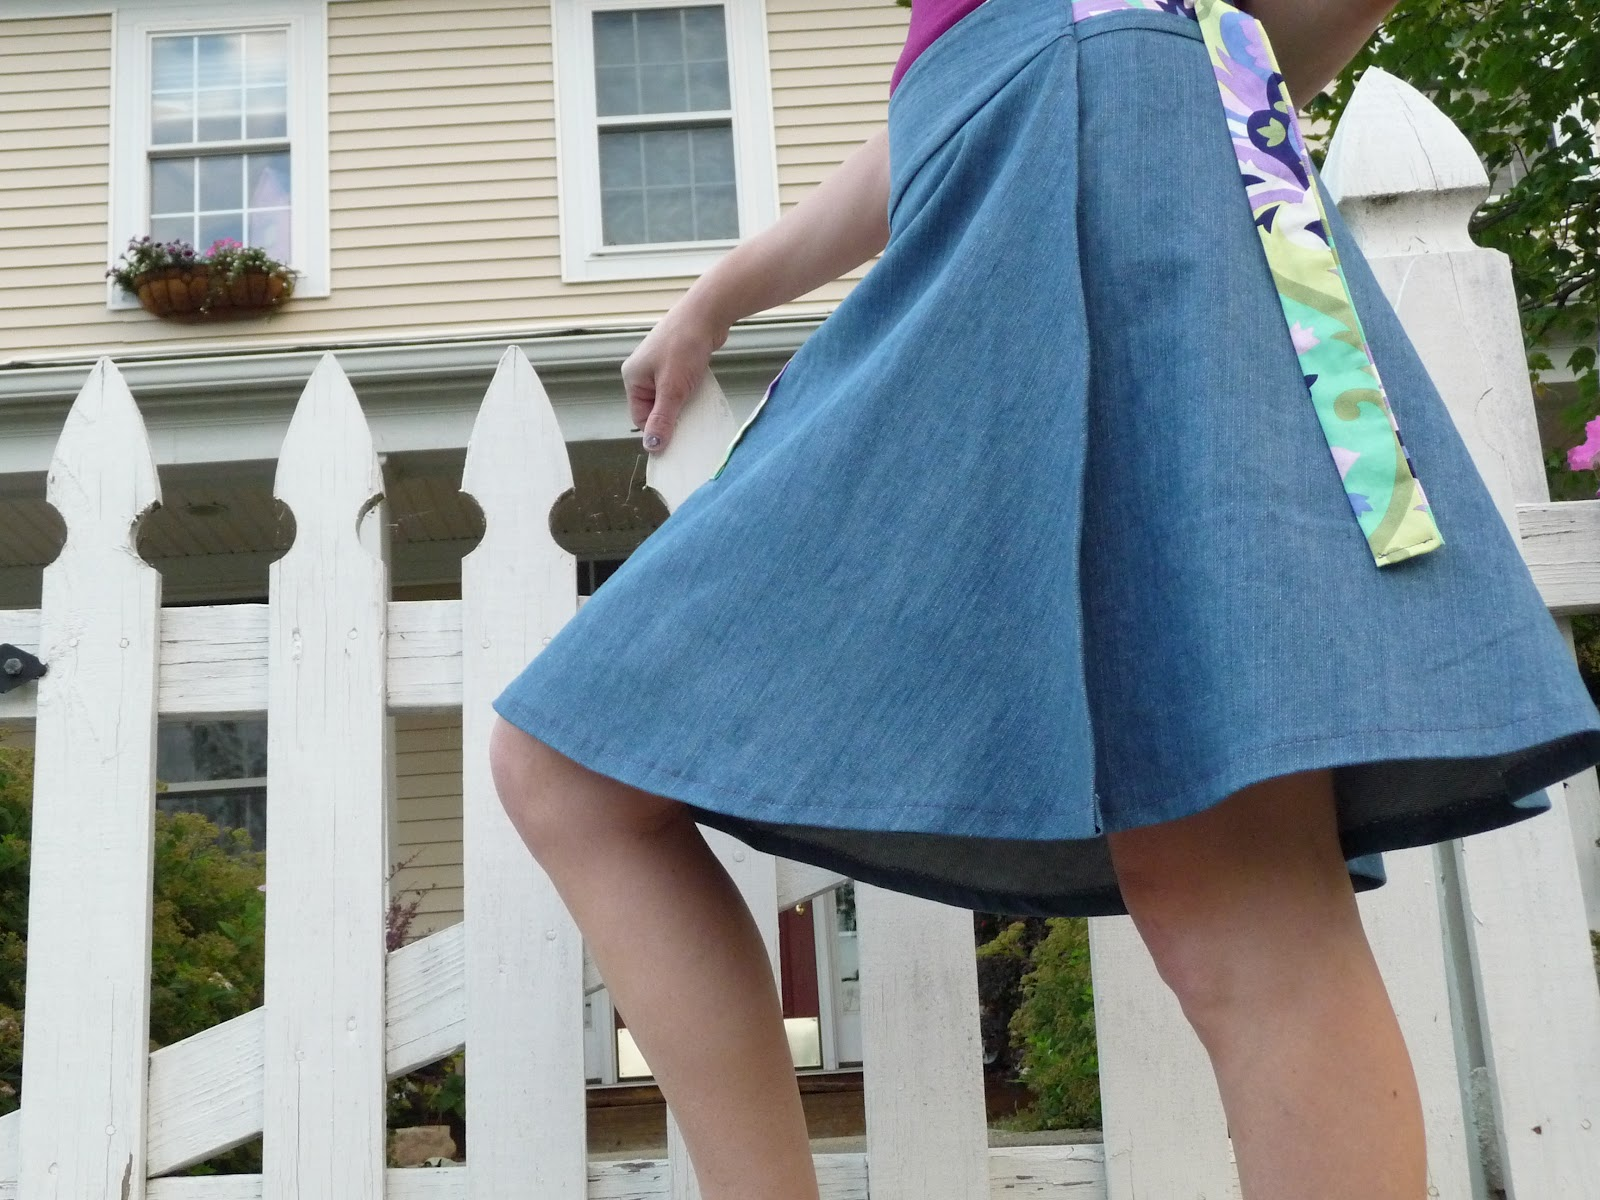 How to Make a Skirt or a Dress Out of a Scarf